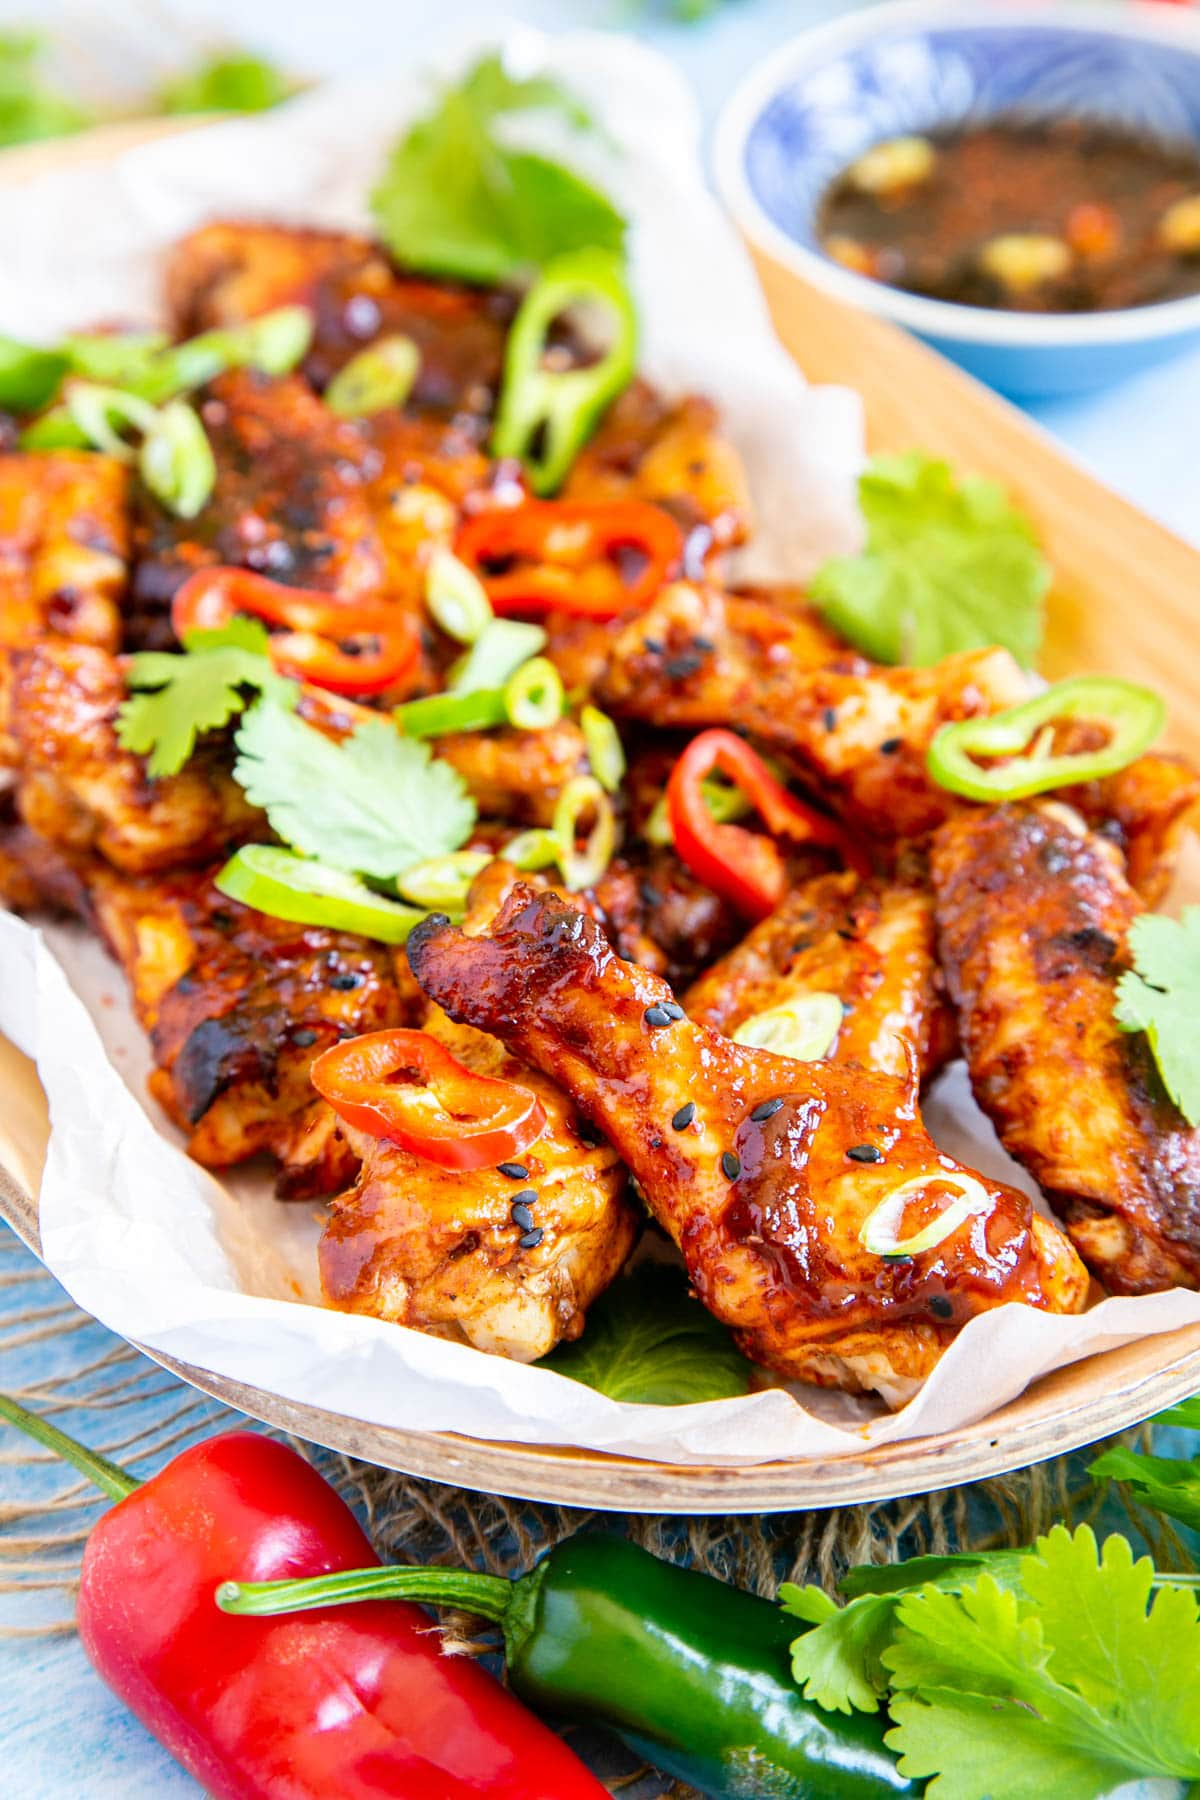 A close up of an oval wooden dish lined with greaseproof paper, full of sticky Asian chicken wings. The dish is garnished with sliced chillies and coriander leaves.